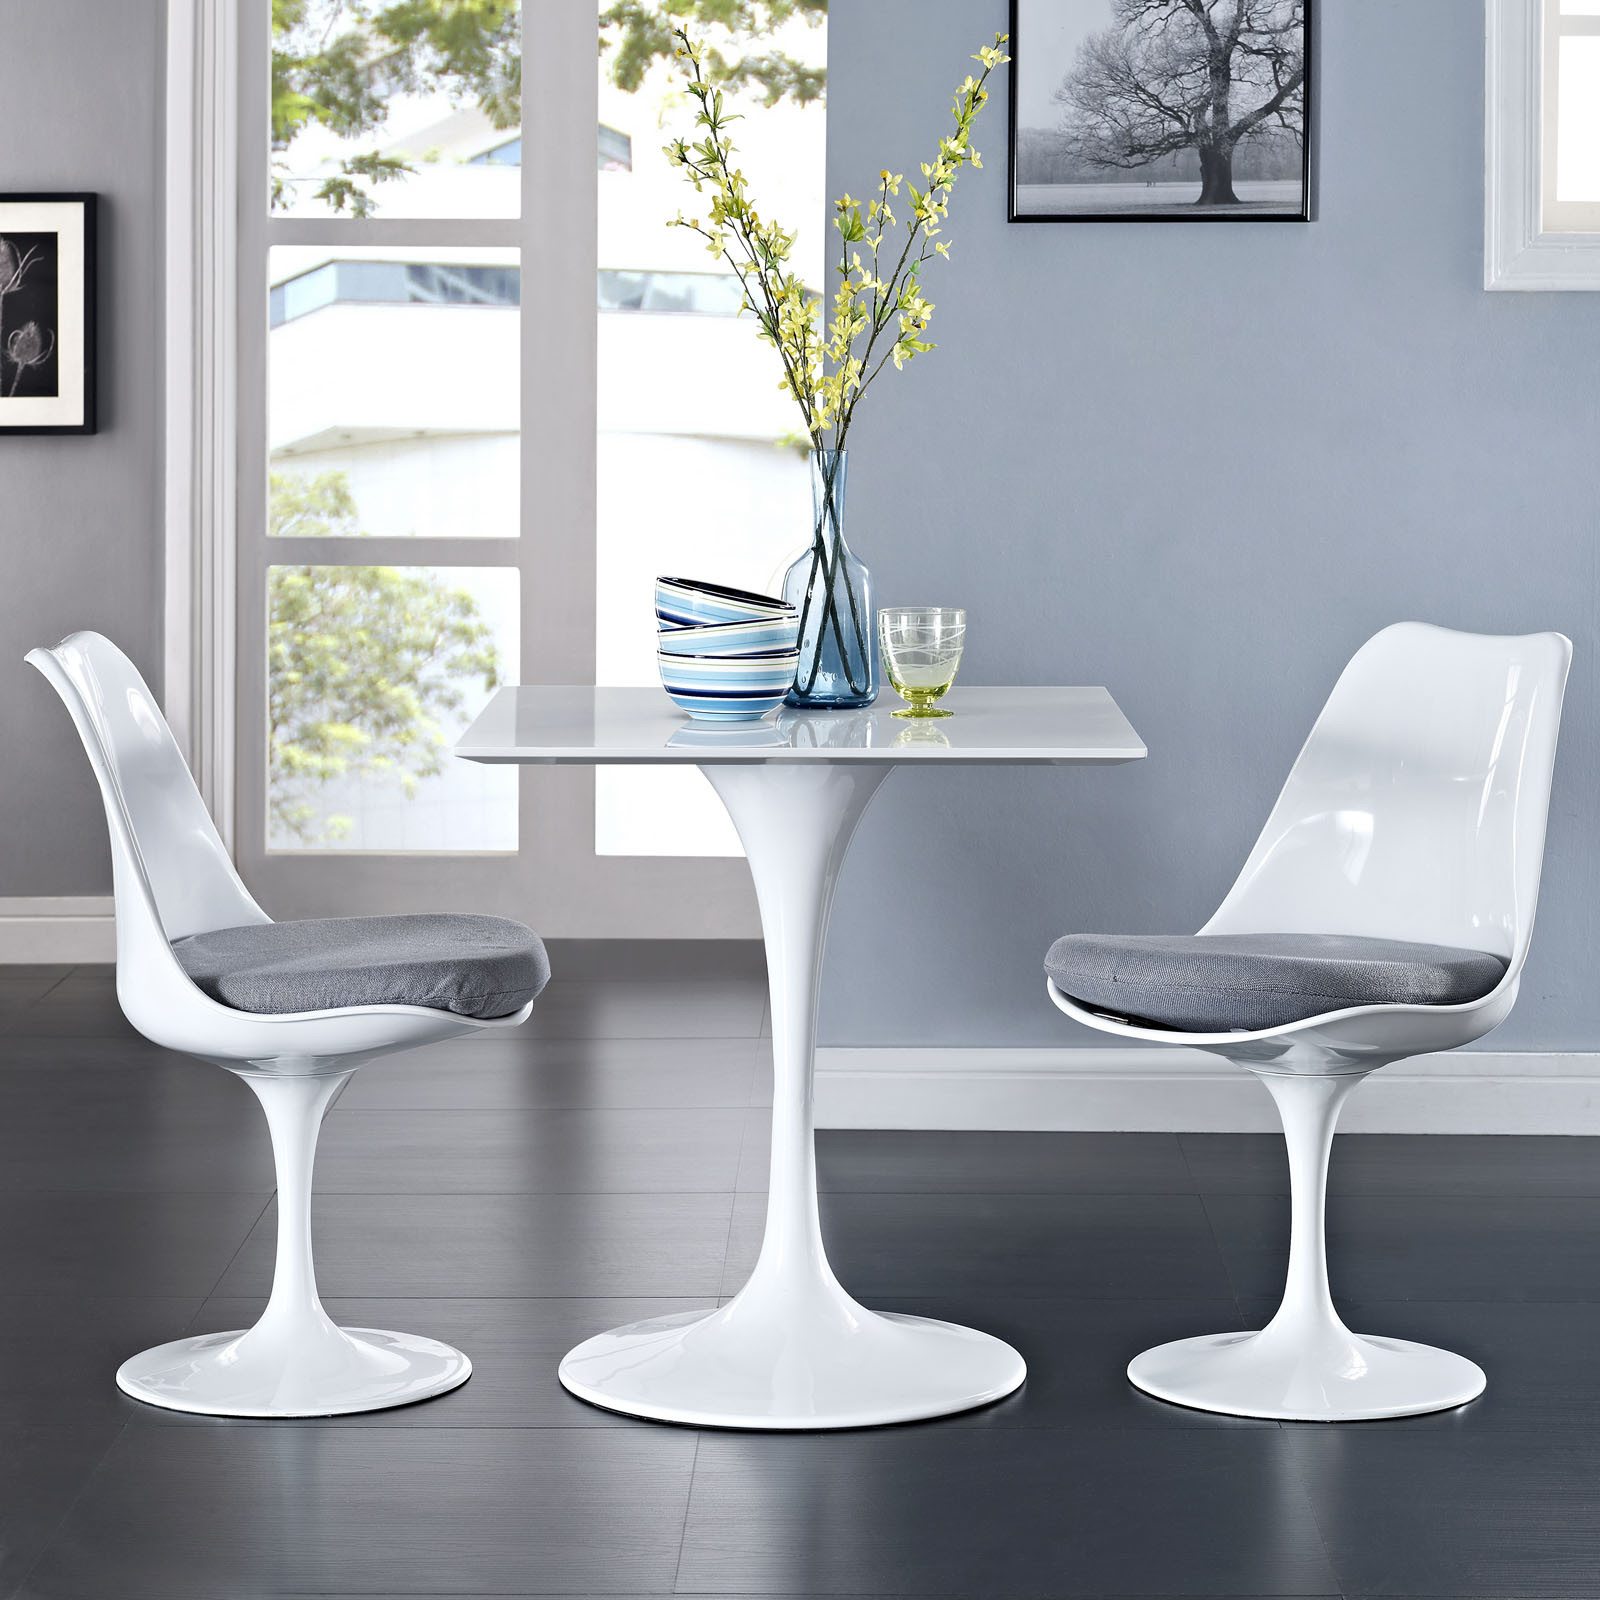 pics the at tulip best chairs home sxs nest saarinen cm design popular diameter appealing knoll and set table for concept dining